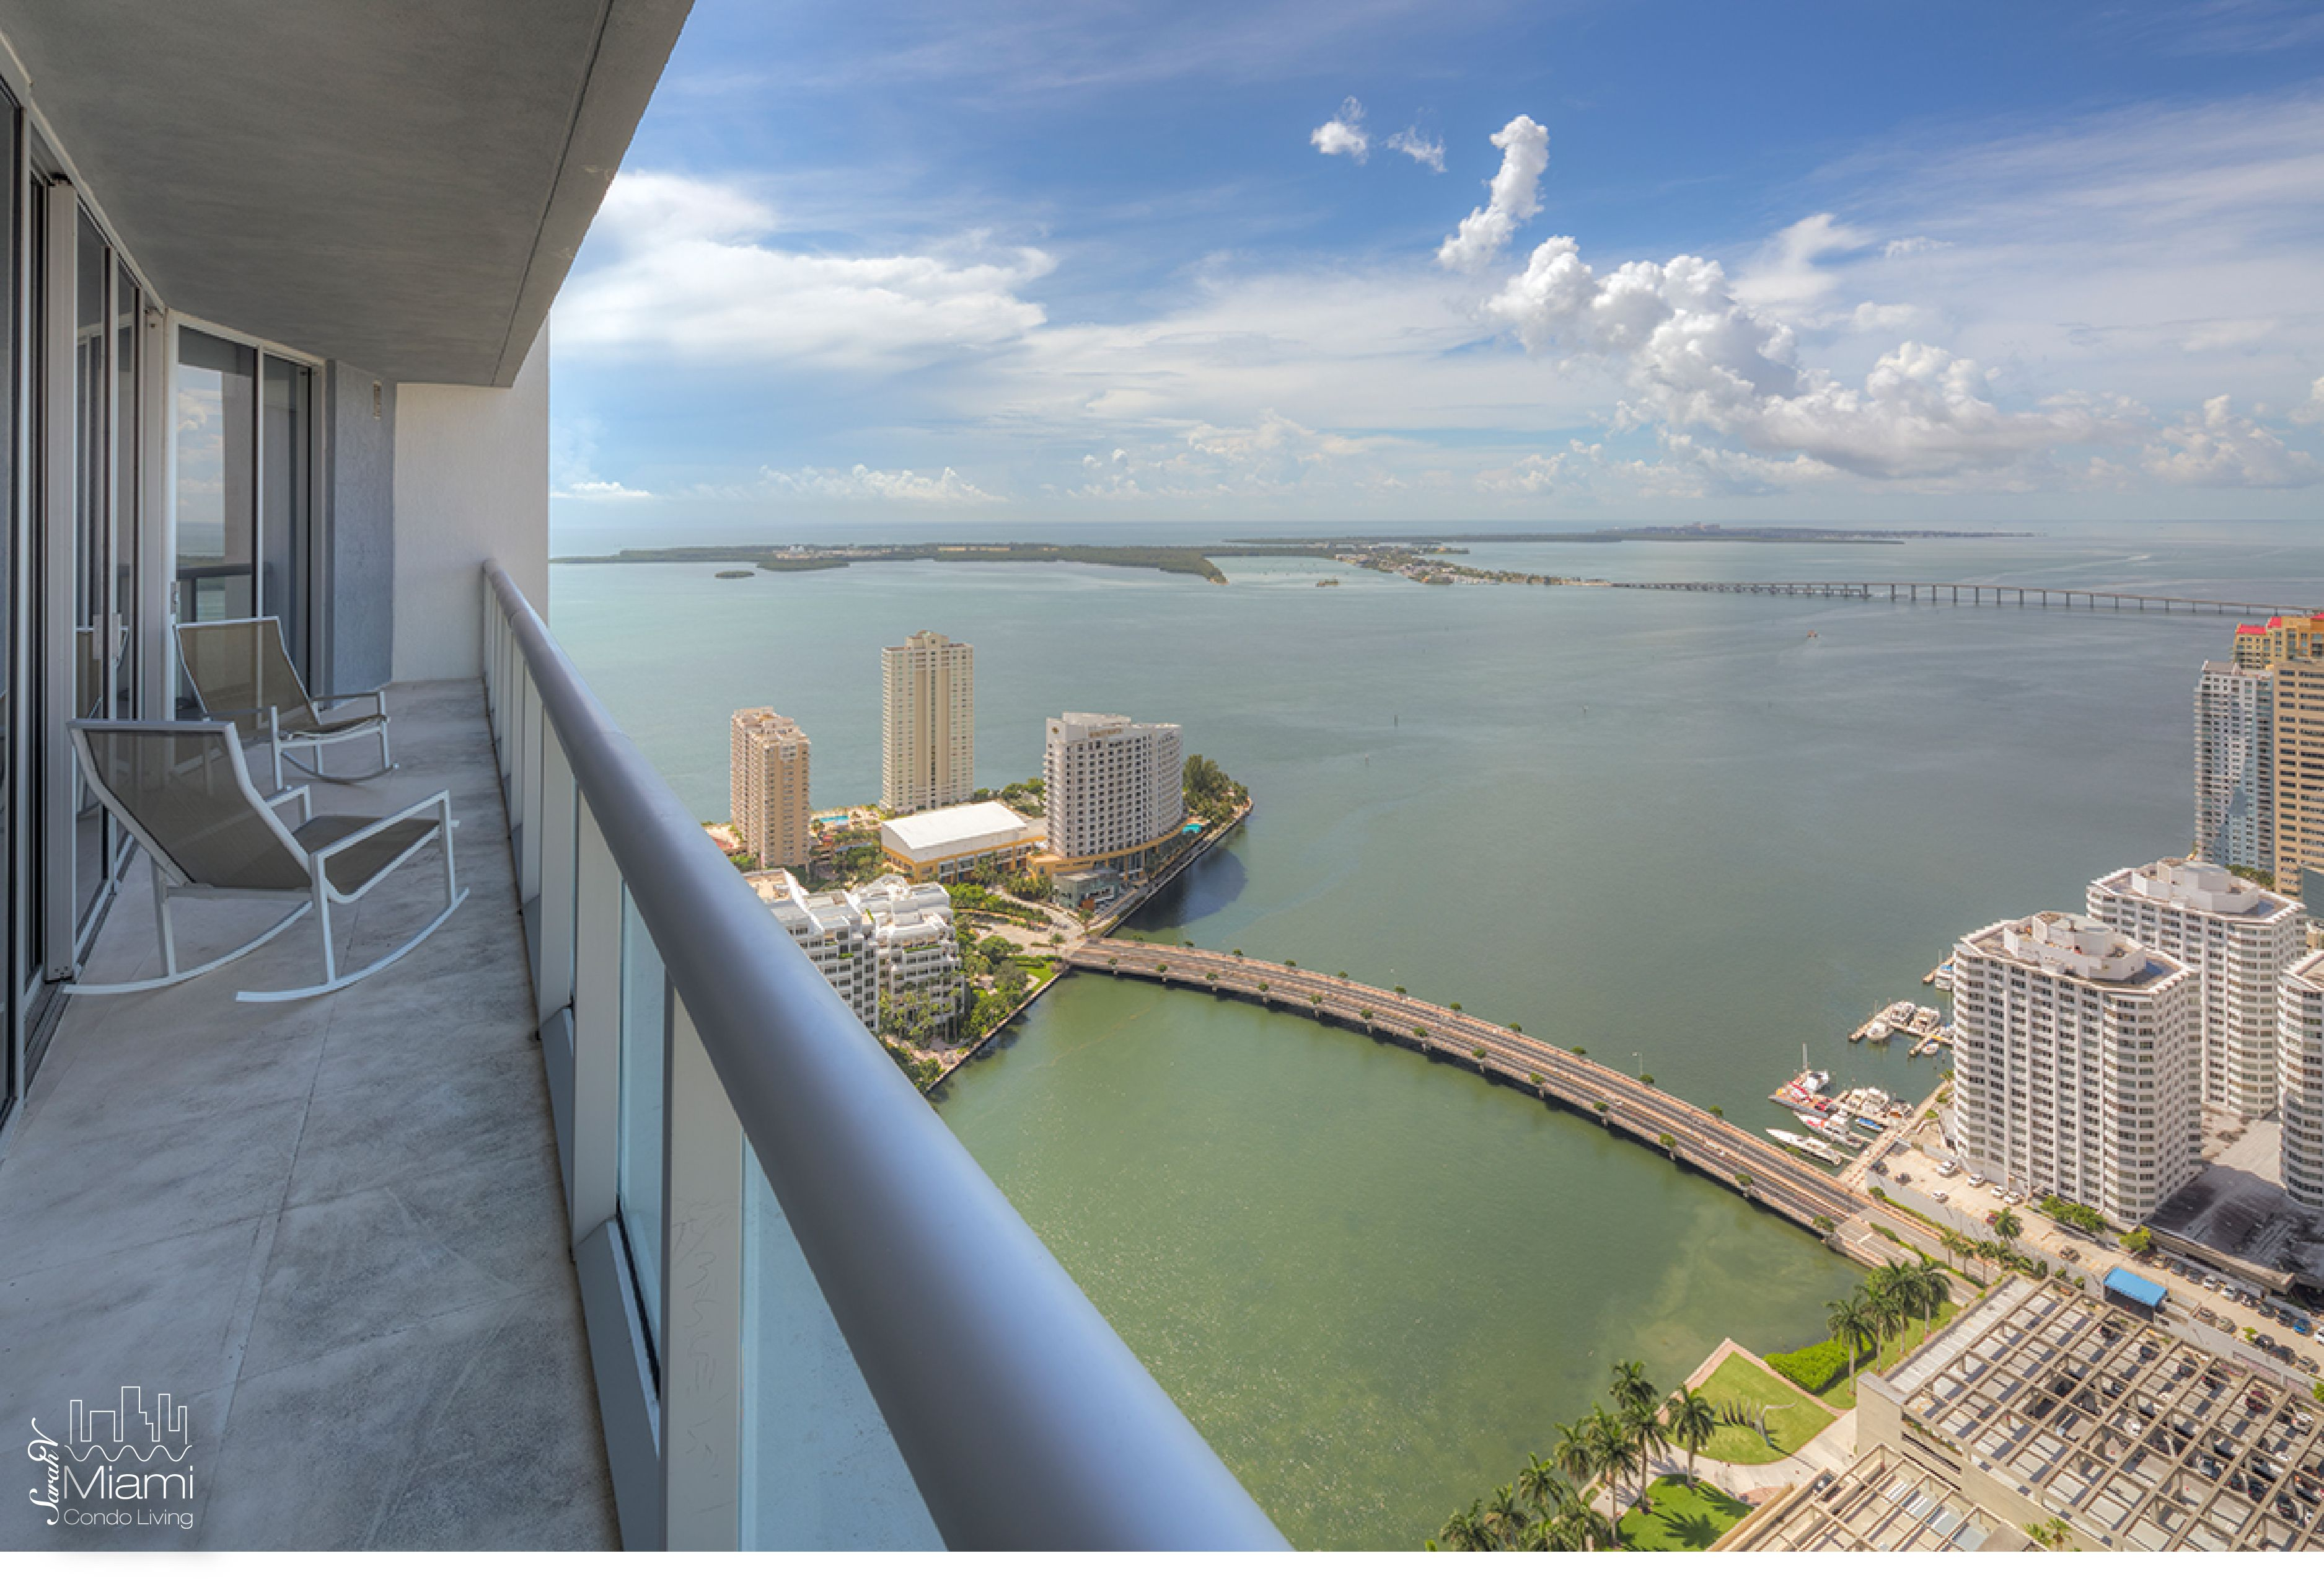 Beutiful view from a condo at iconbrickell Miami